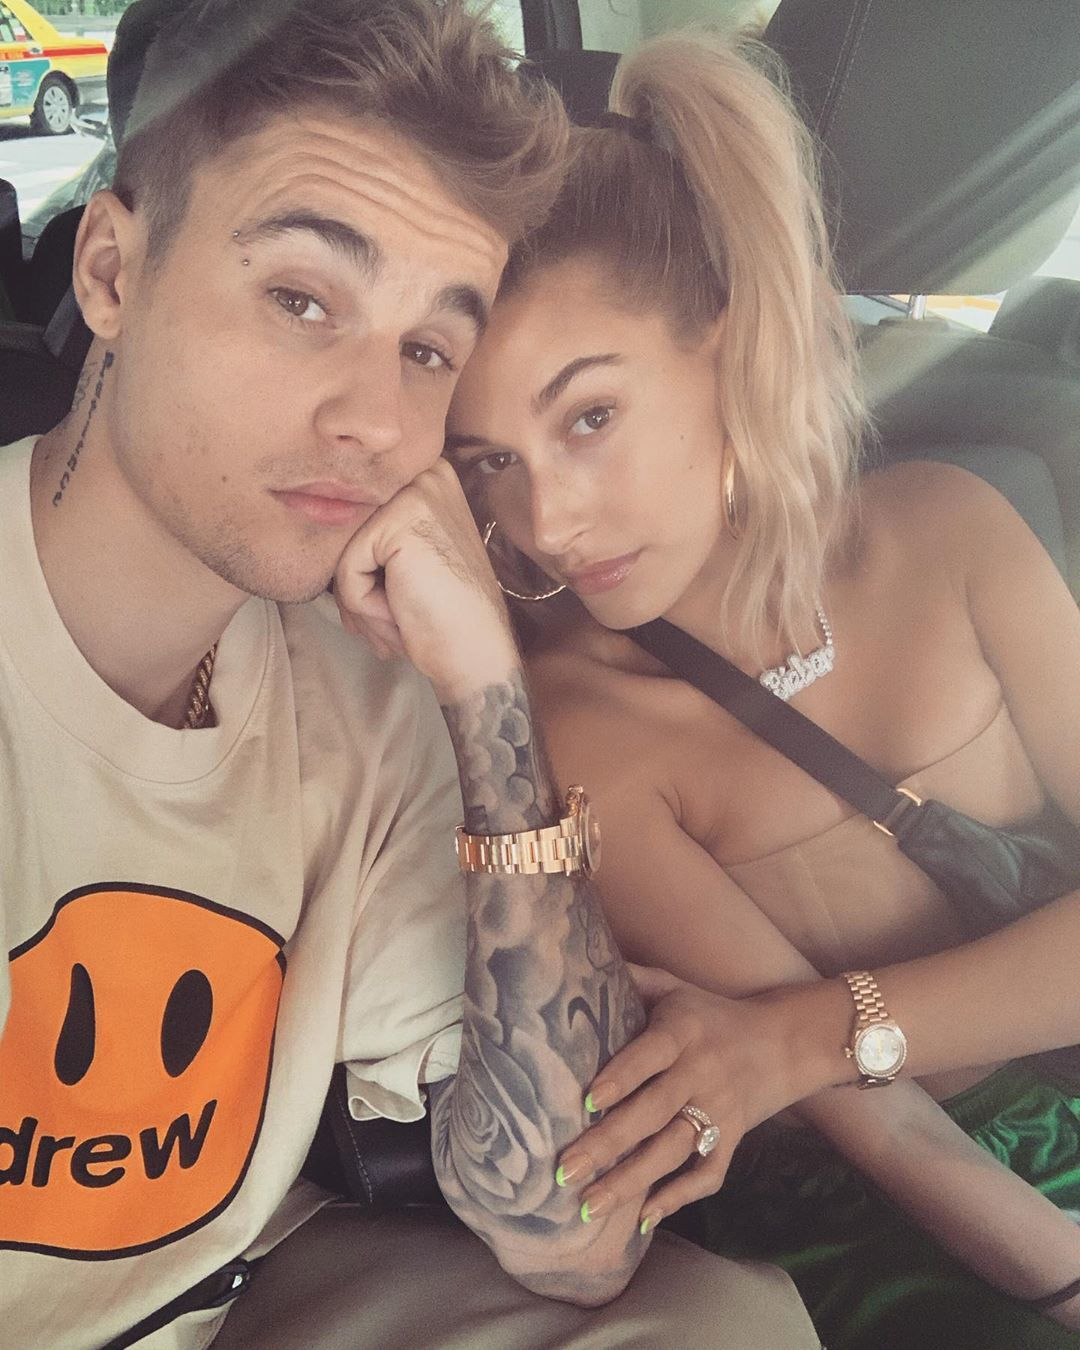 """""""Go best friend that's my best friend""""   Justin Bieber, who posted this selfie with wife Hailey Bieber on Instagram on July 31, 2019"""